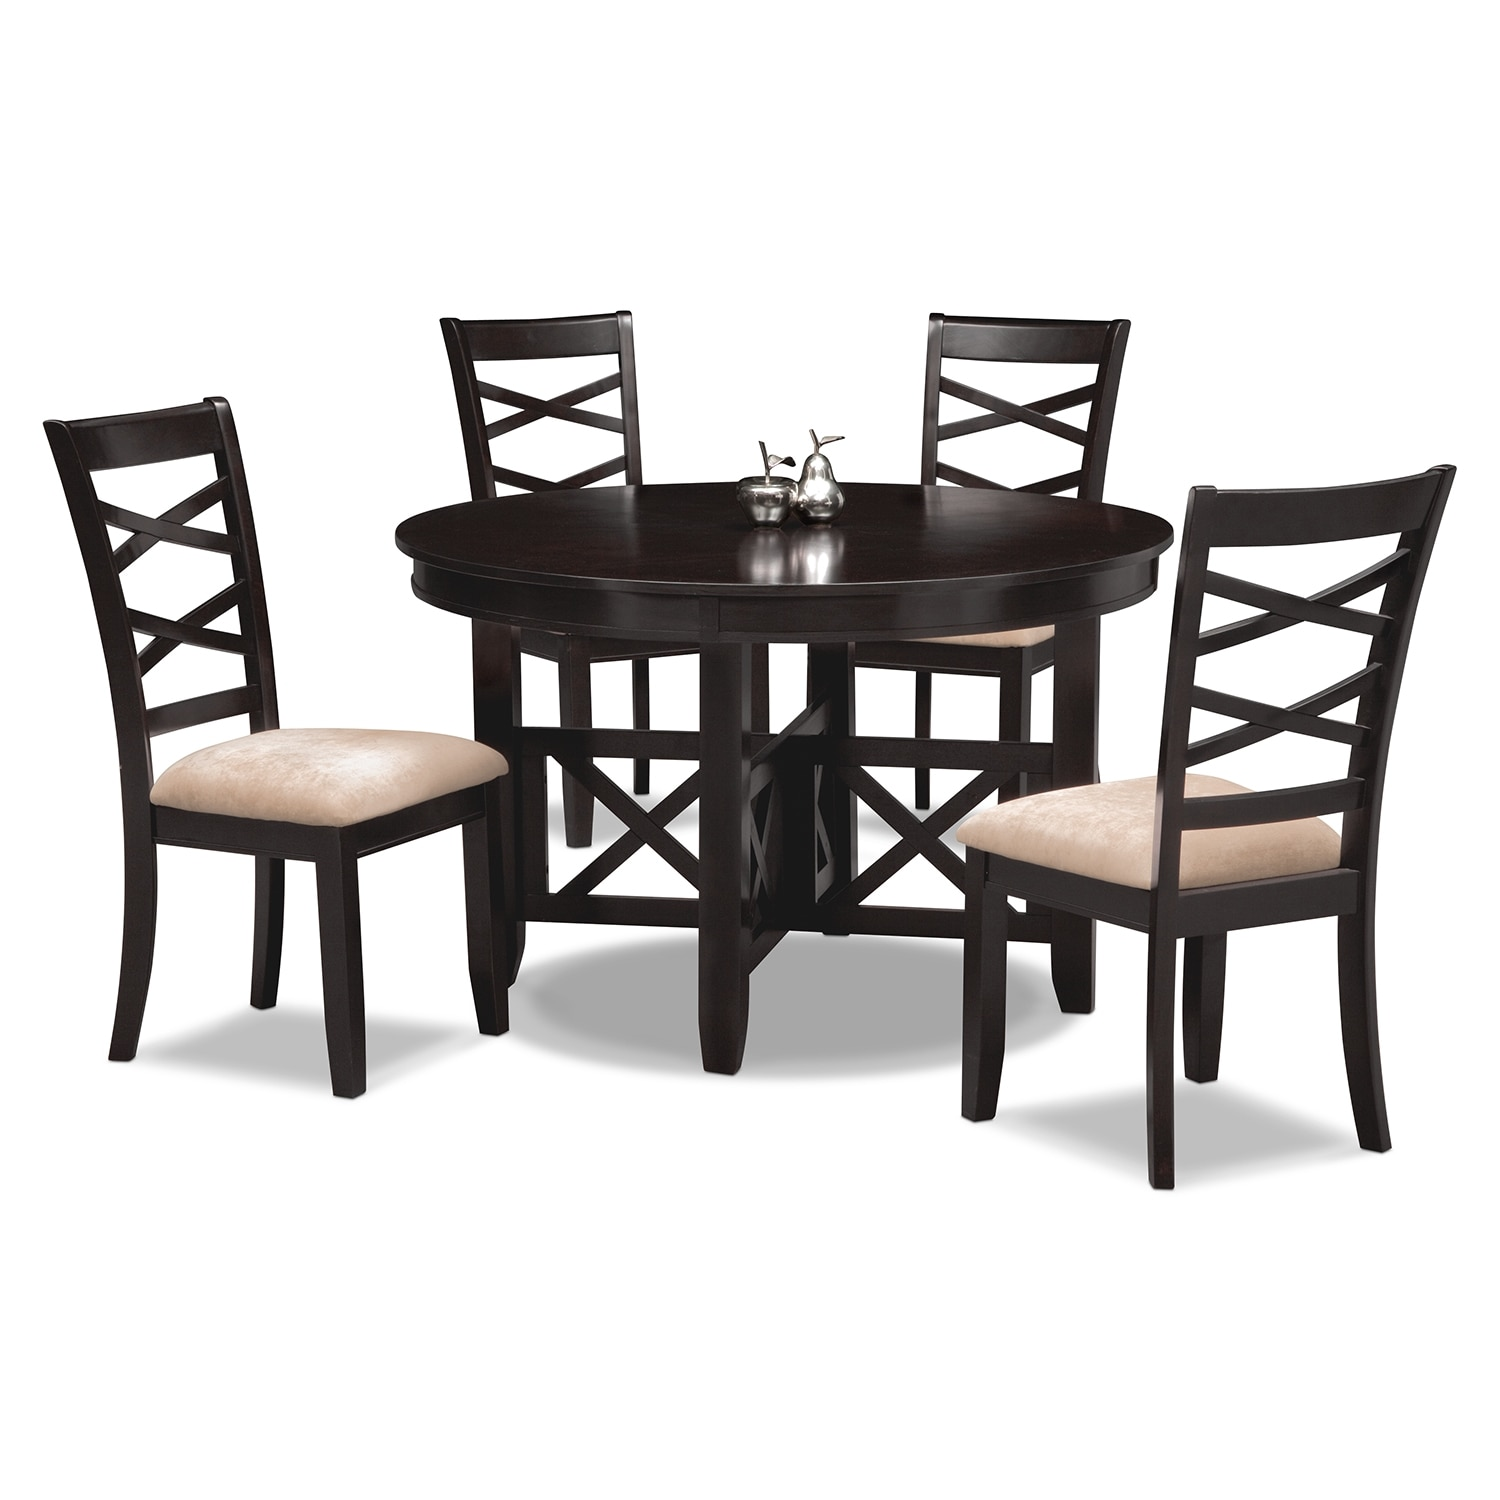 Dining Room Furniture - Americana Espresso 5 Pc. Dinette